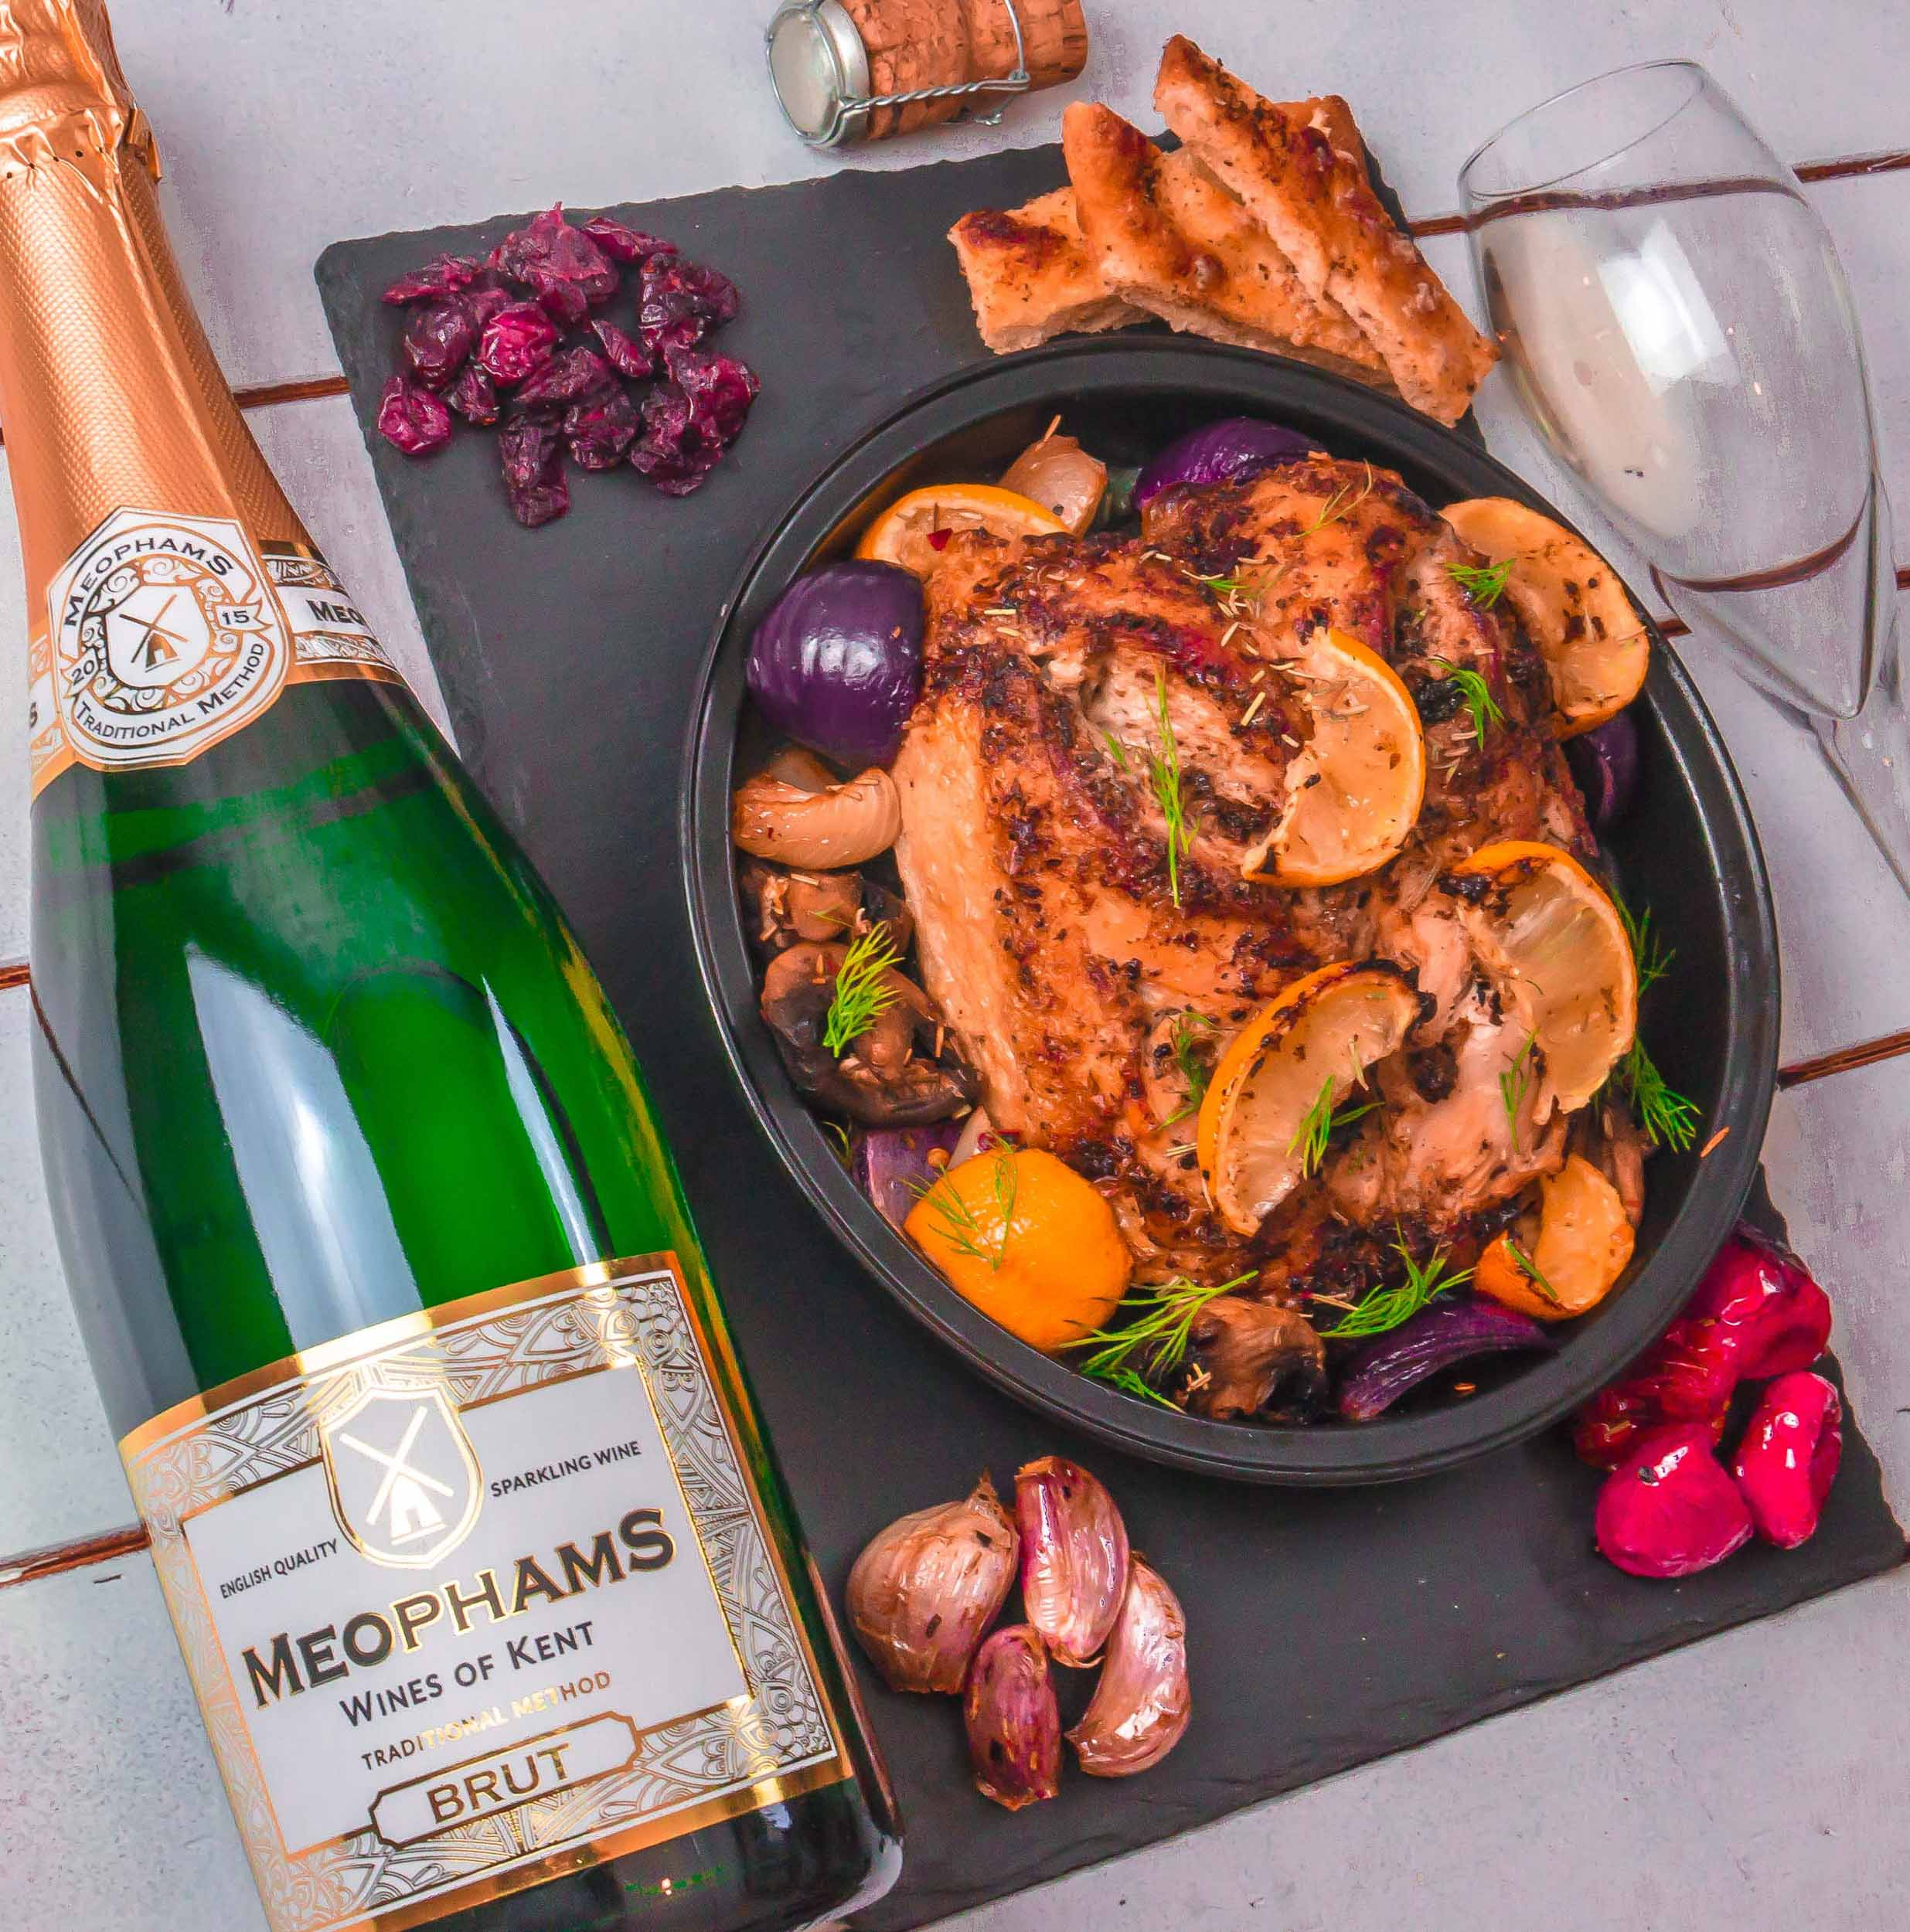 Meophams-Brut-English-Sparkling-Wine-Roast-Chicken-3